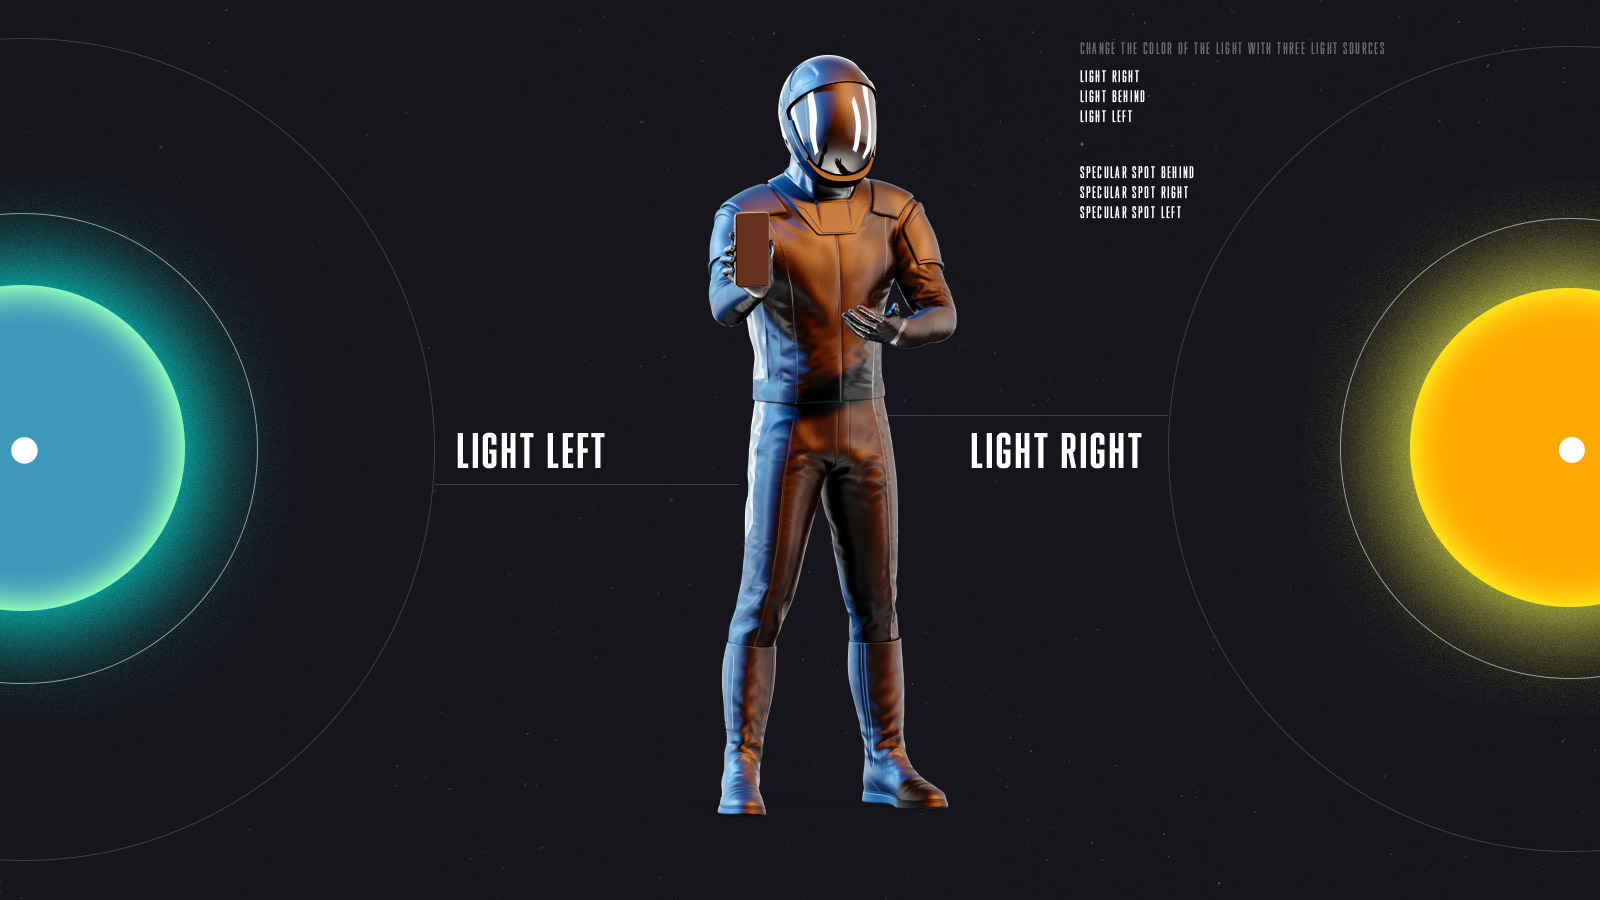 PSD Mockup 3D model SpaceX Astronaut #47